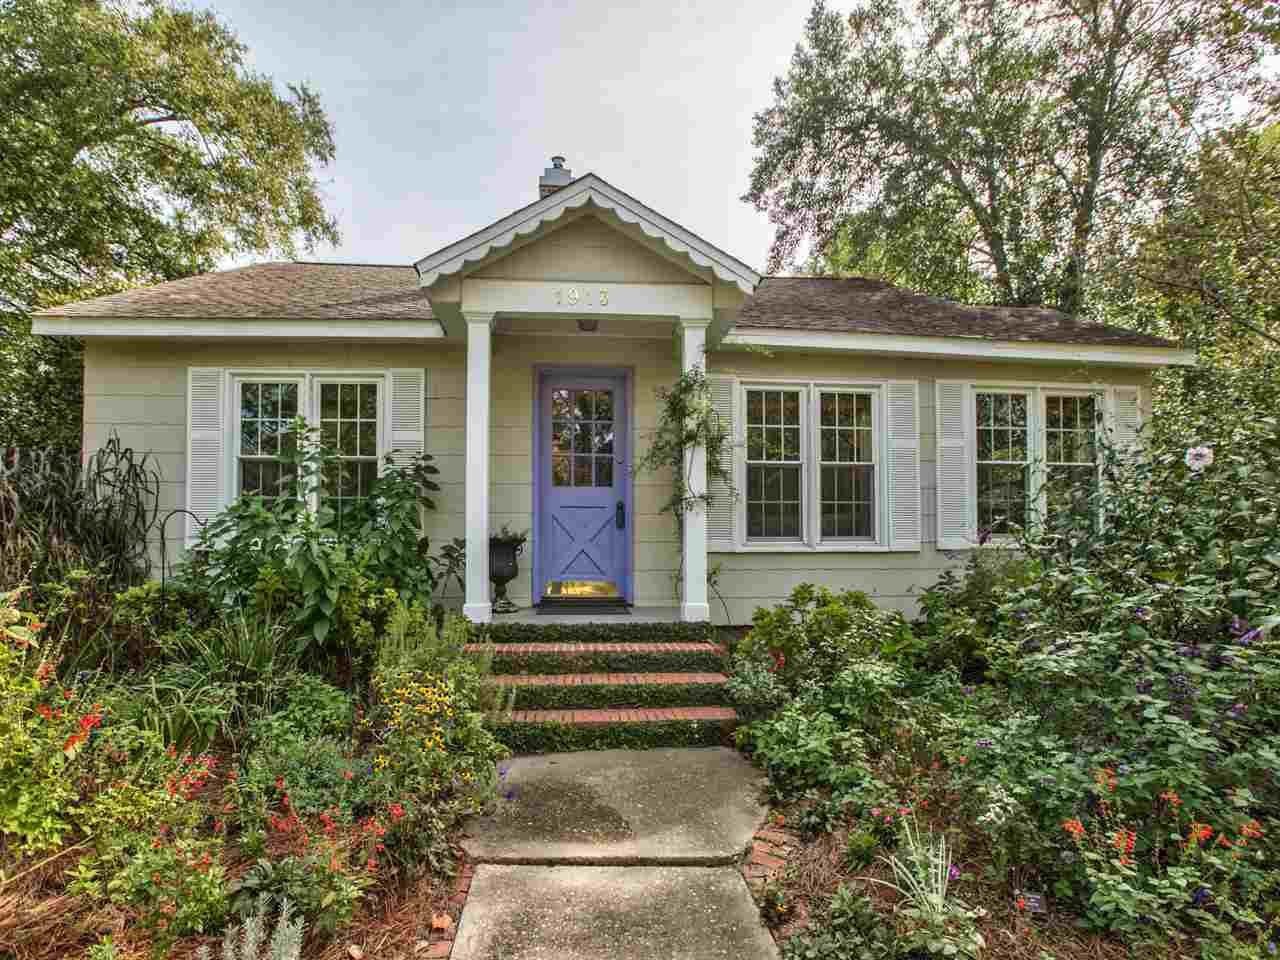 $269,900 - 3Br/2Ba -  for Sale in Northwood Estates, Tallahassee